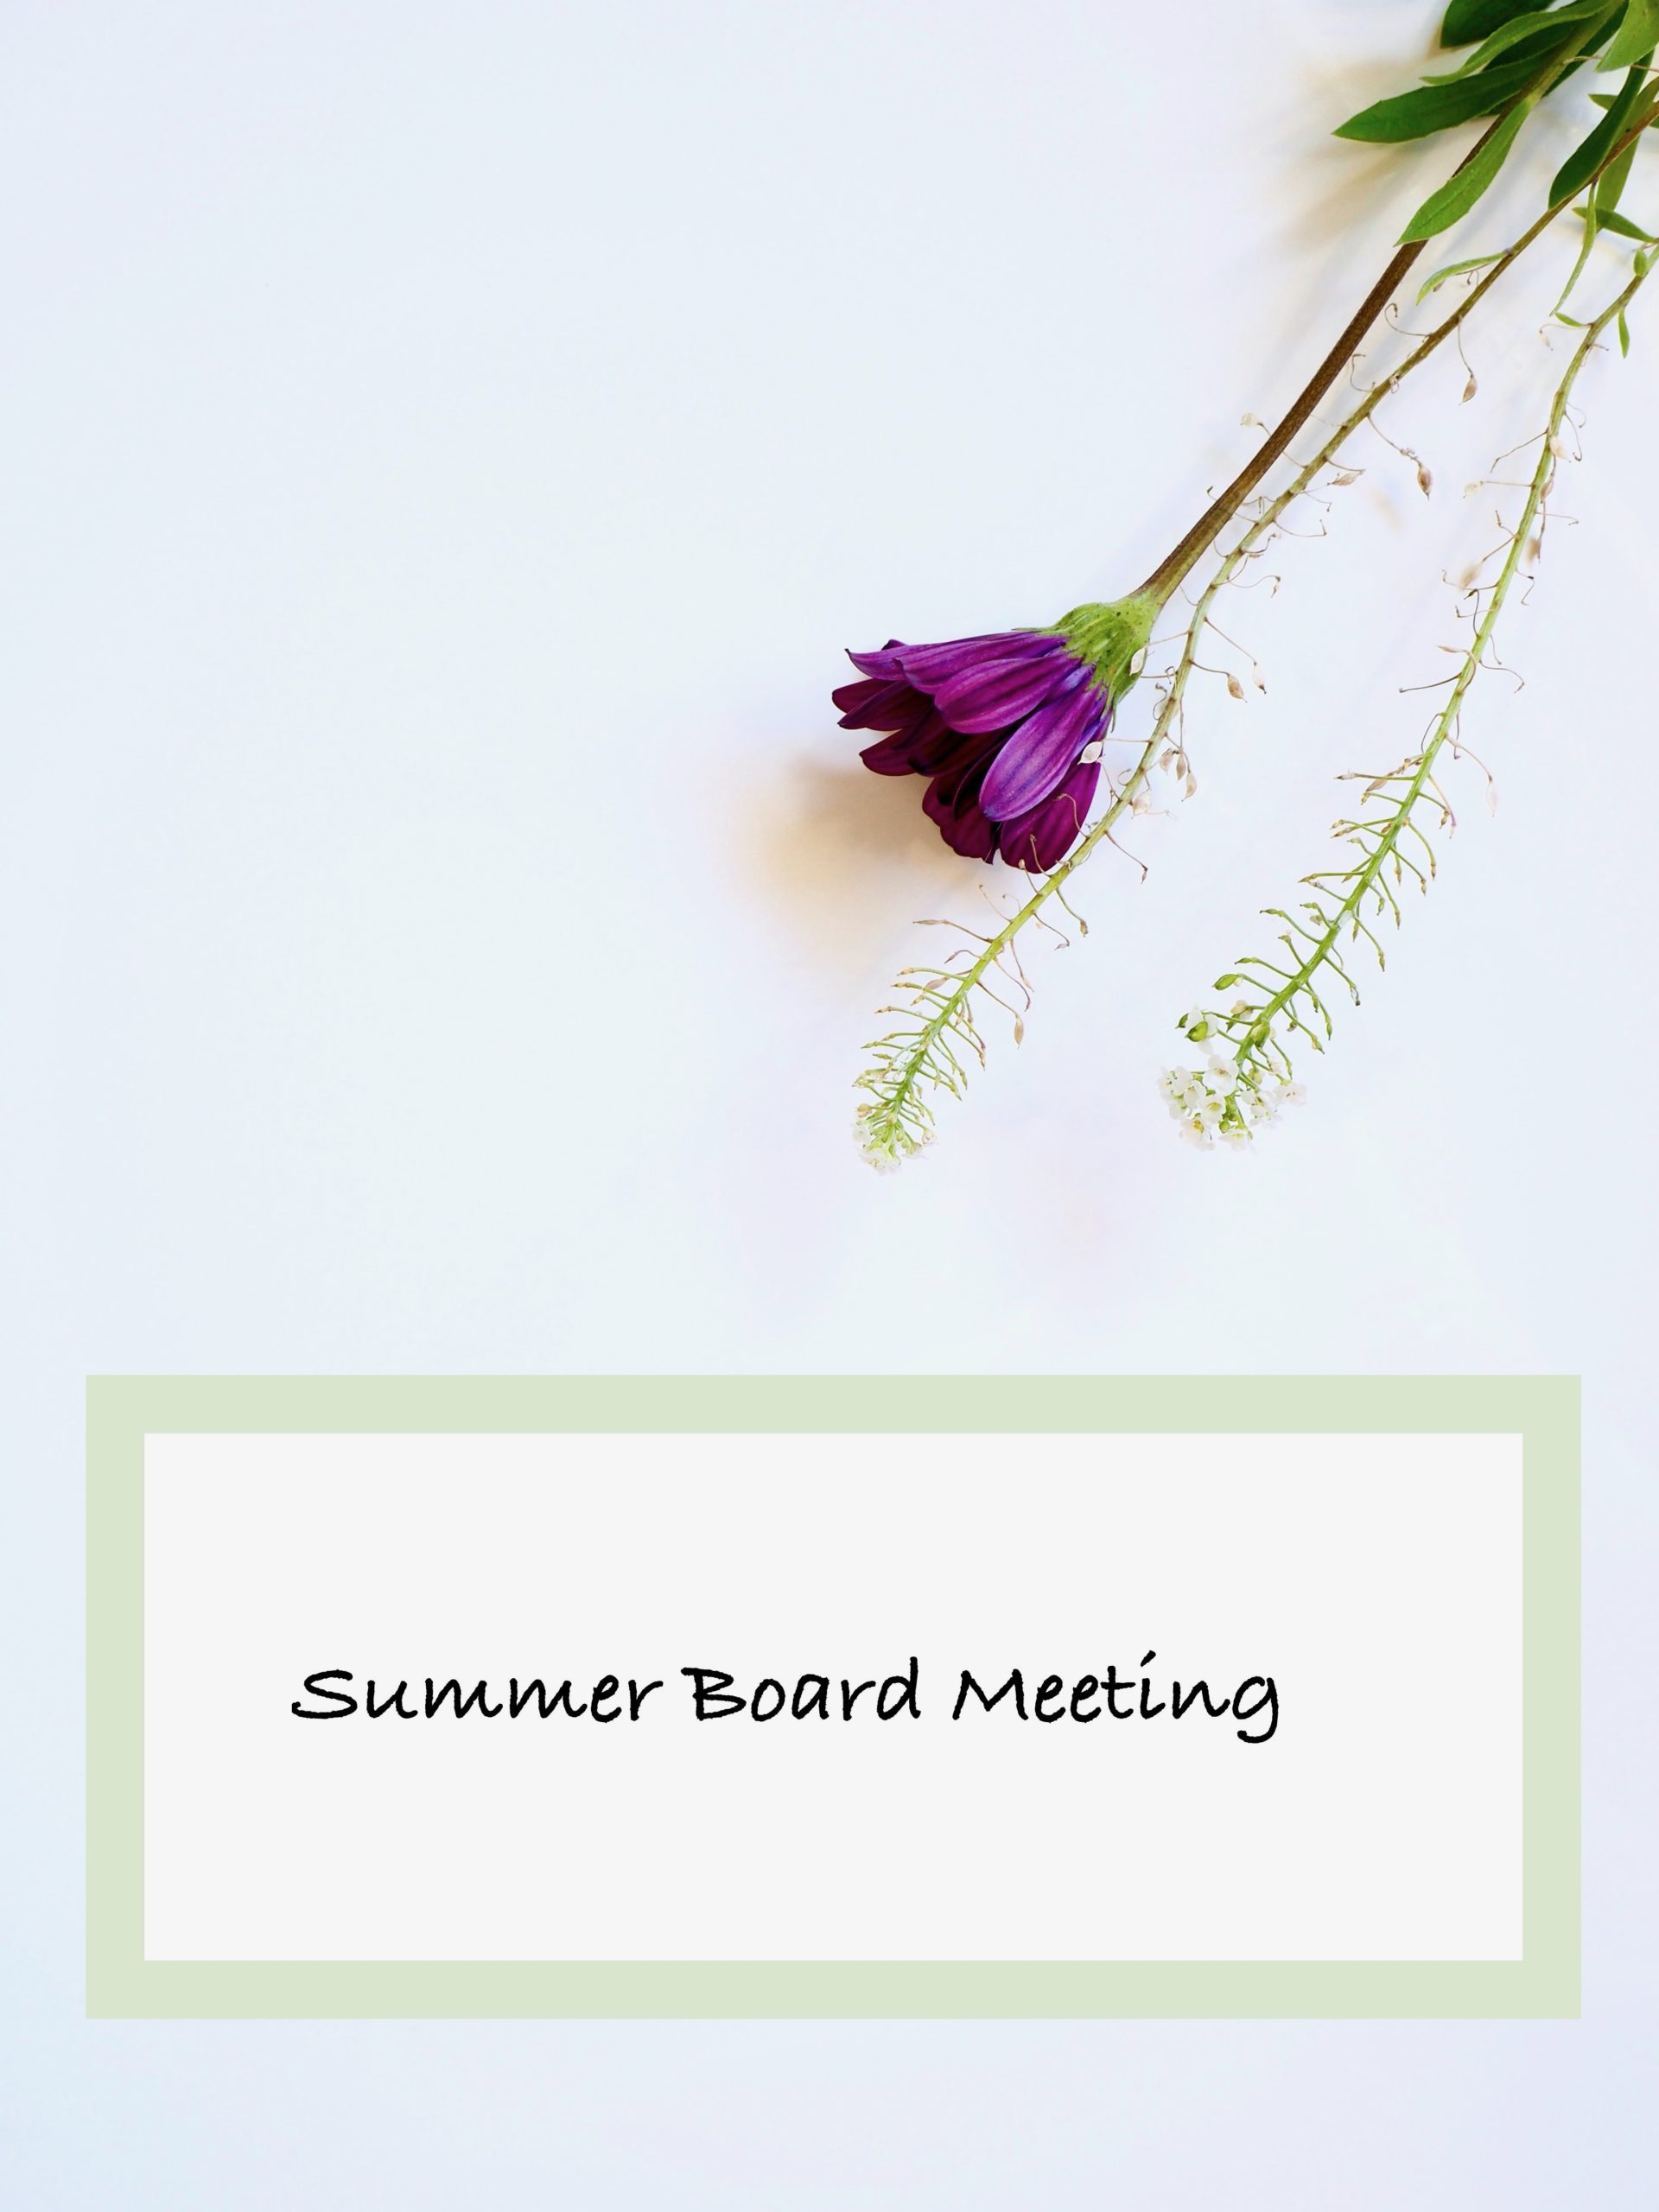 Summer Board Meeting